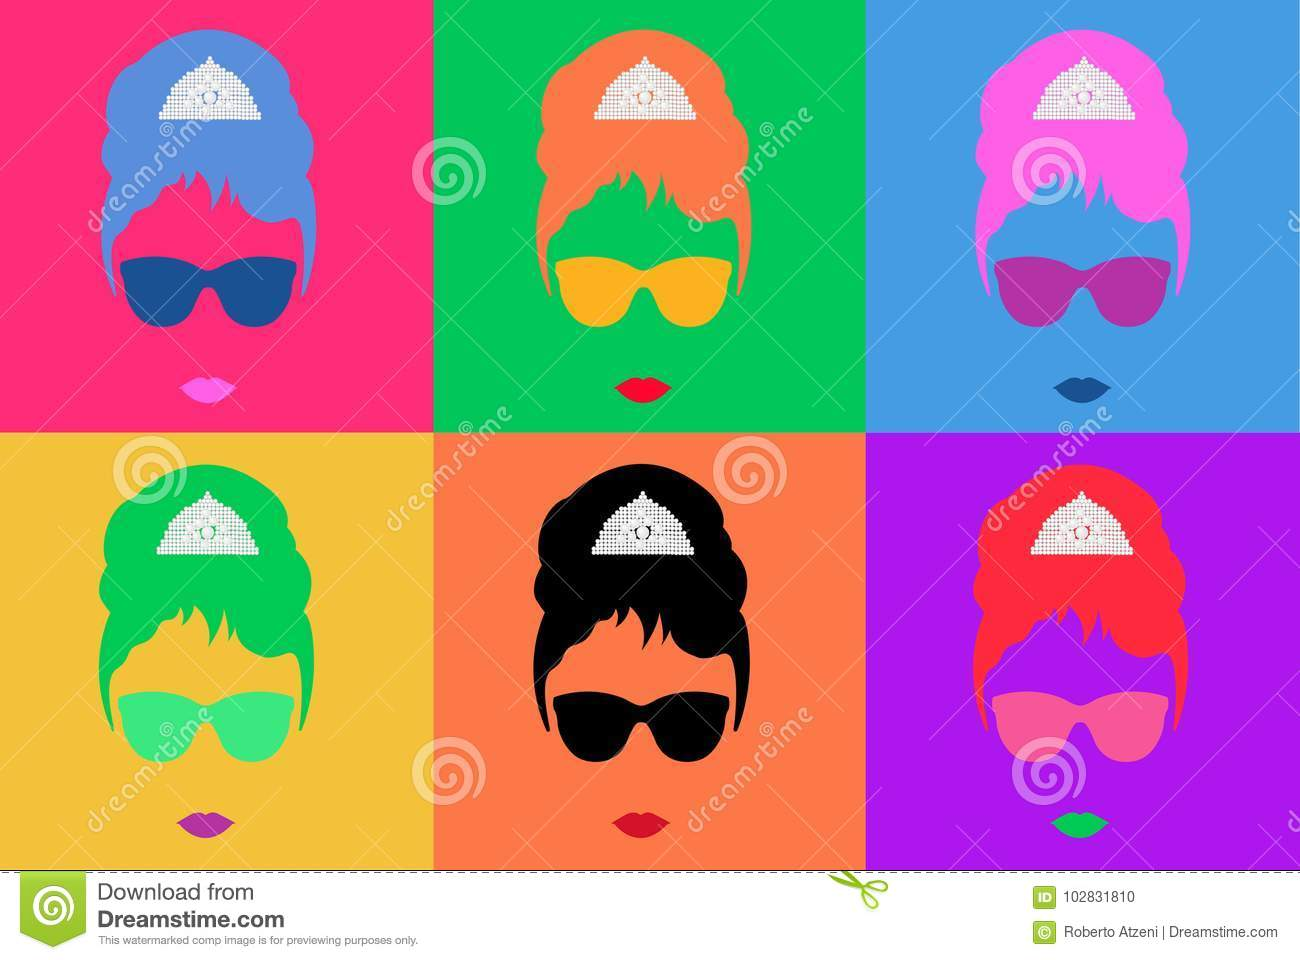 Colored Vector Illustration Pop Art Style Andy Warhol